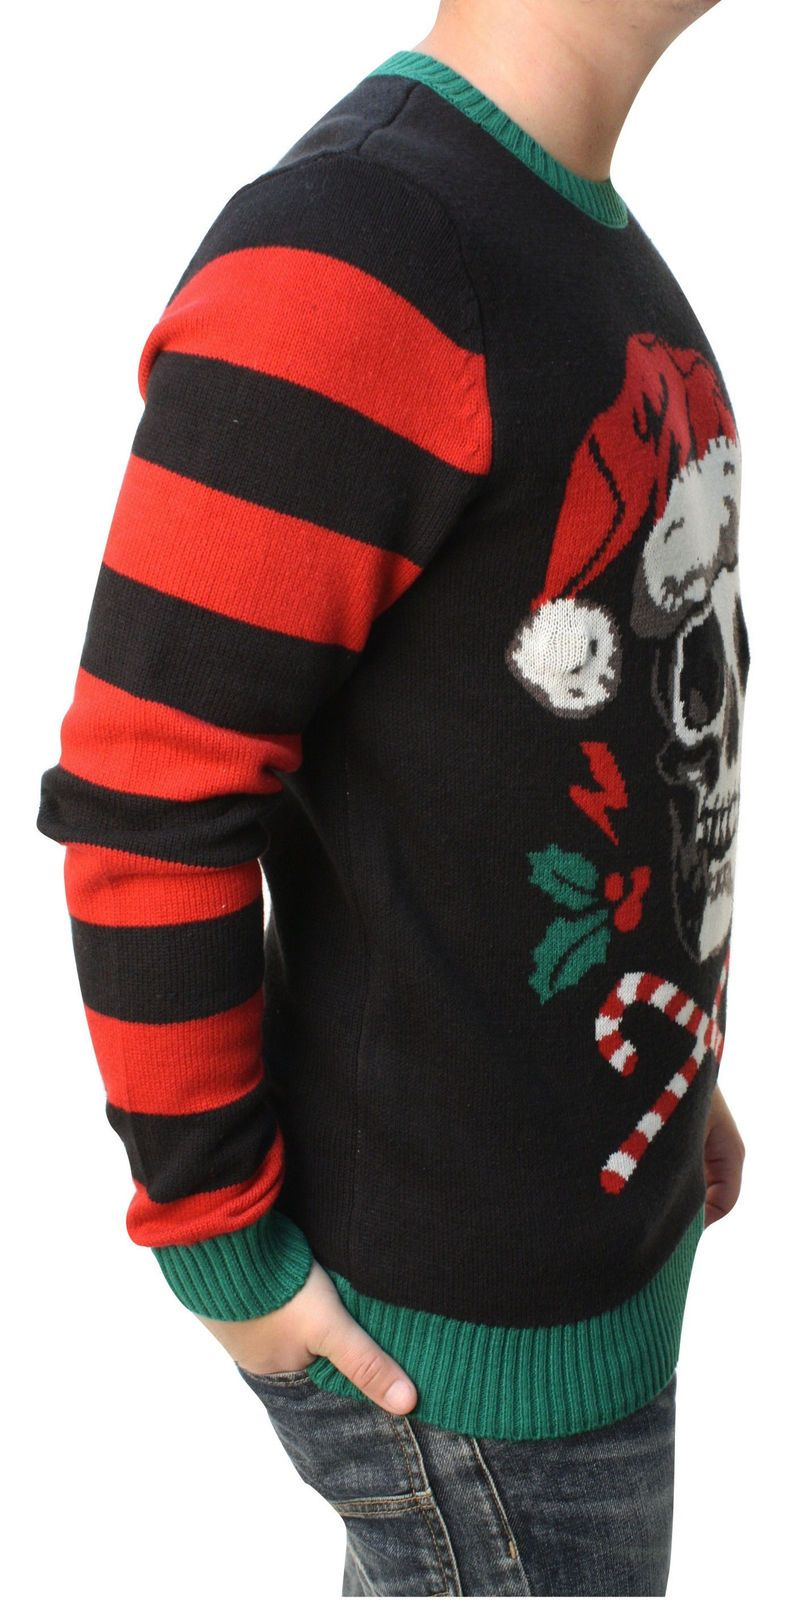 7742dfc0033c8 Ugly Christmas Sweater Men s Skull Santa Hat Light Up Pullover Sweatshirt